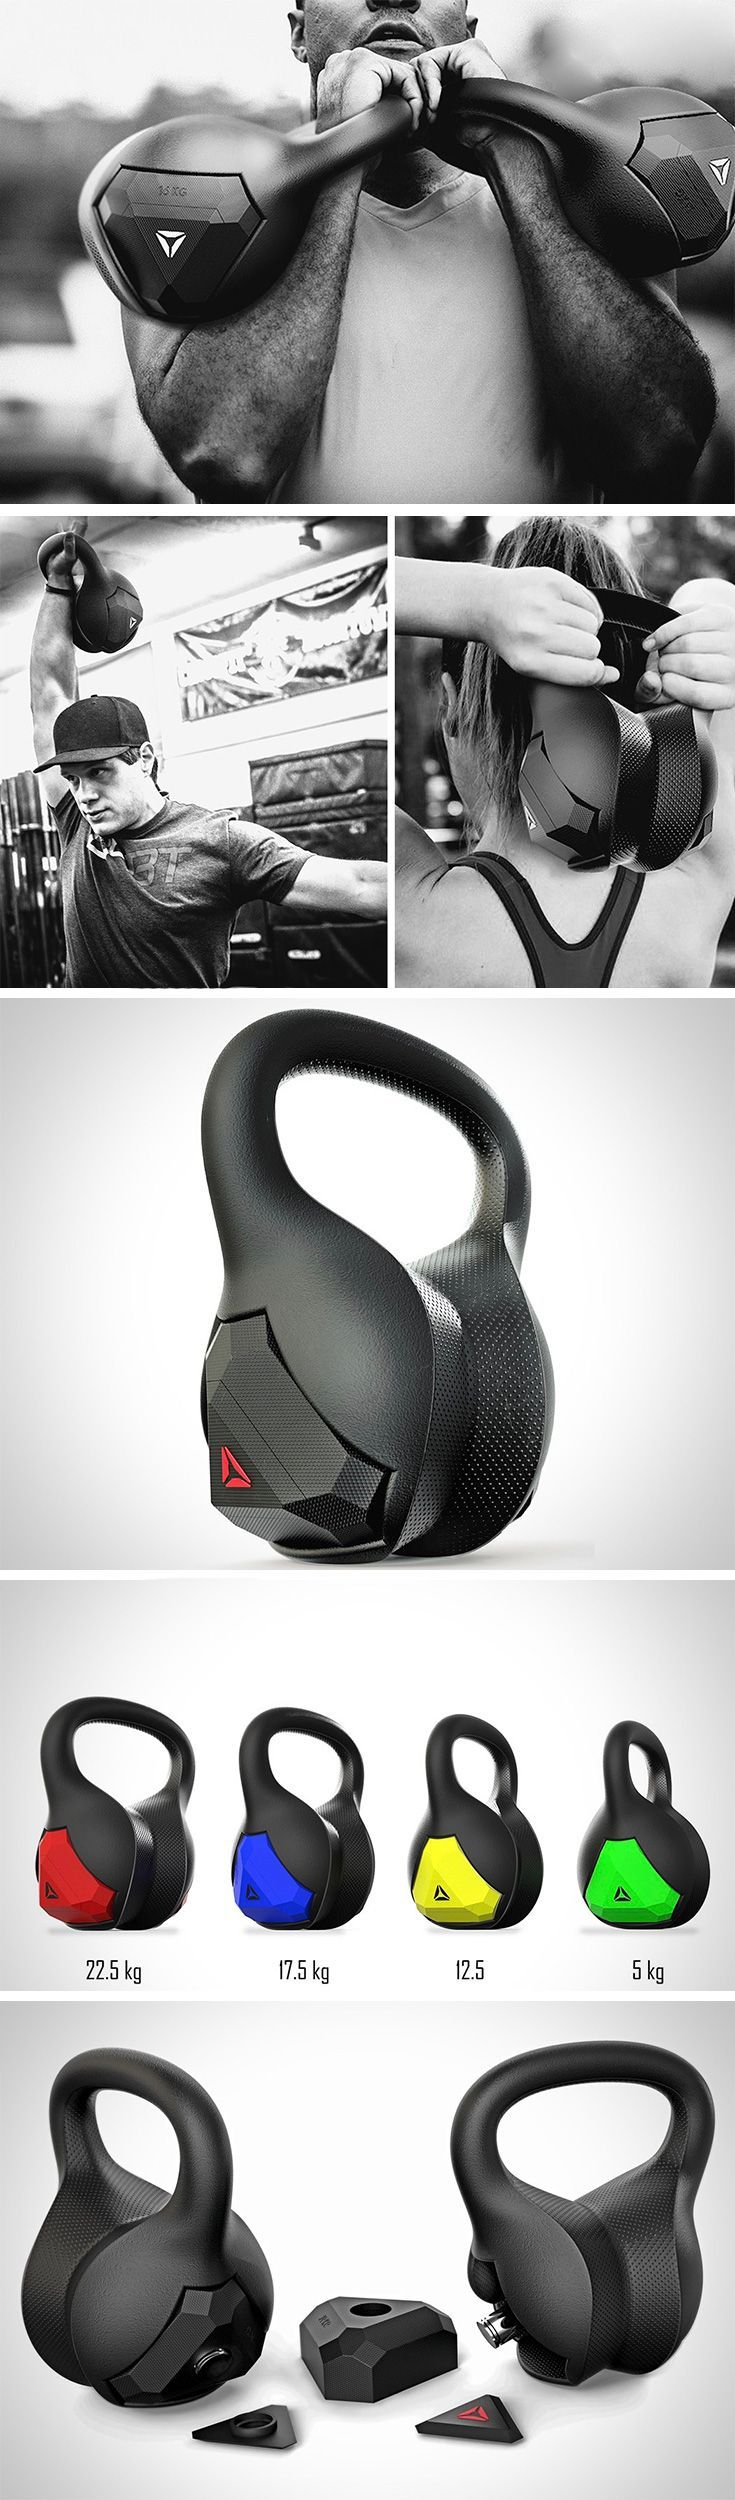 this design features a unique, contoured shape that is ergonomically adapted to wrap around the wrist and forearm, providing a much more comfortable kettlebell experience.